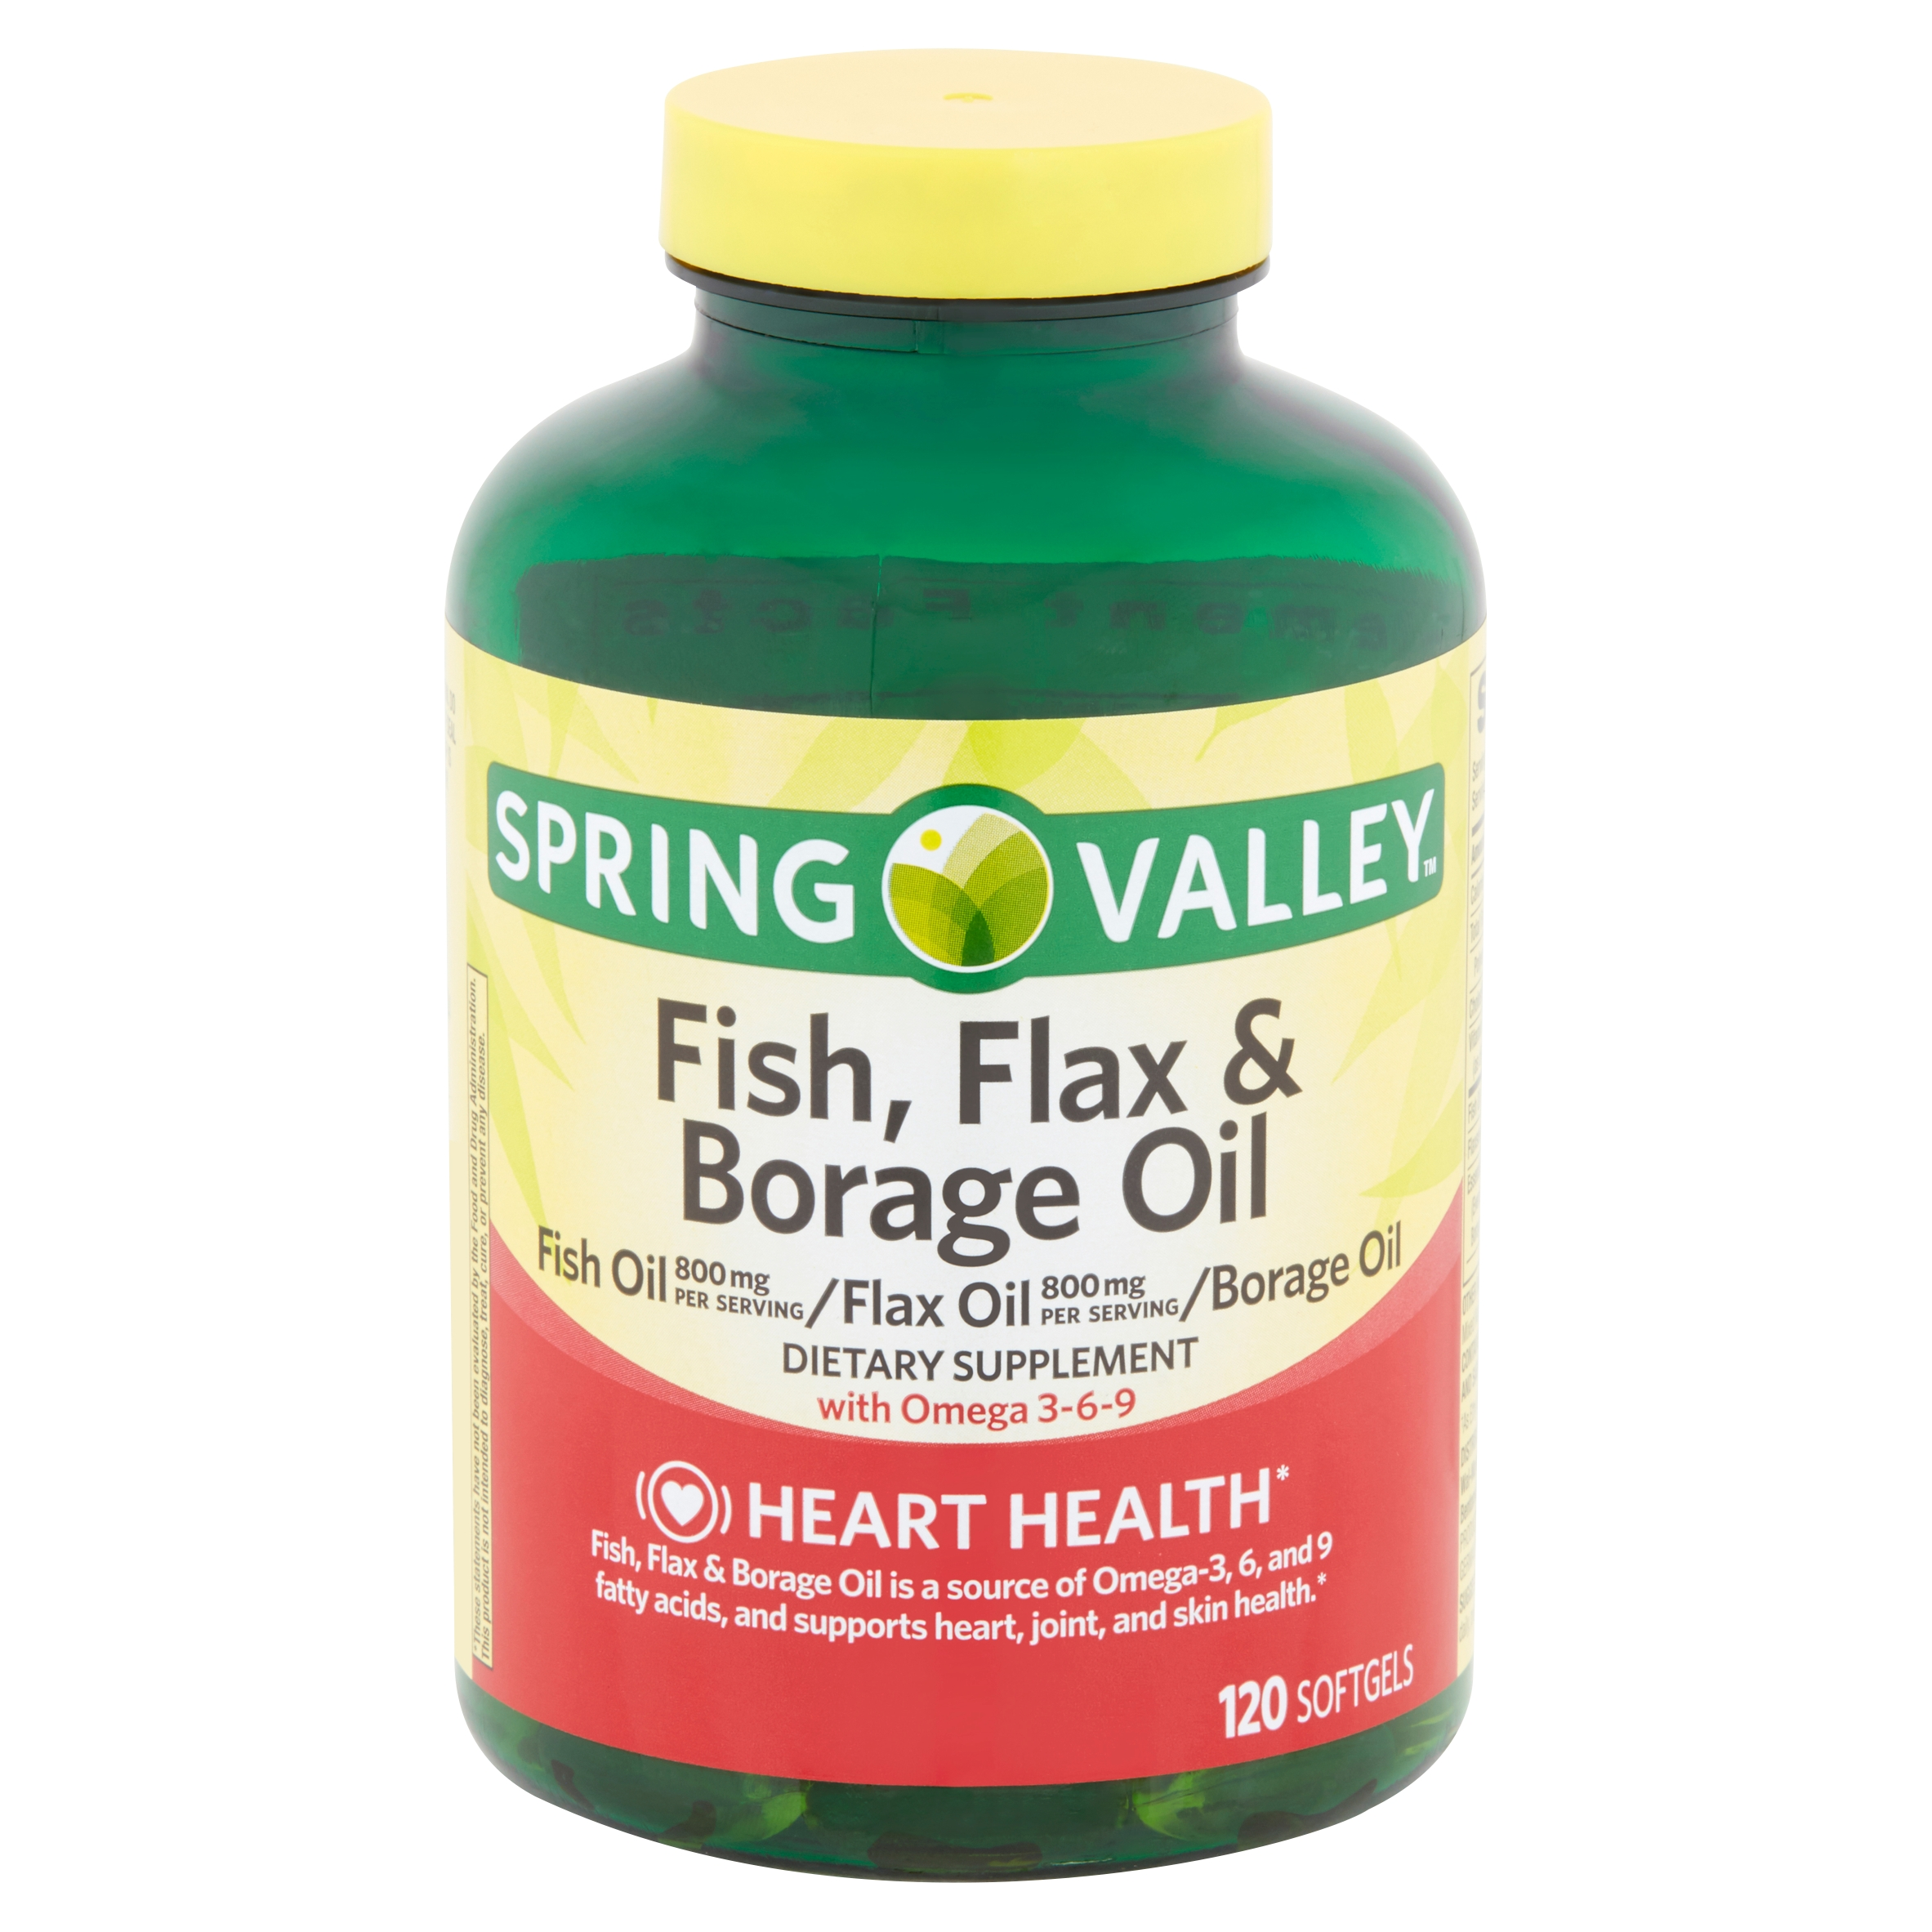 Spring Valley Fish, Flax & Borage Oil Softgels, 120 count